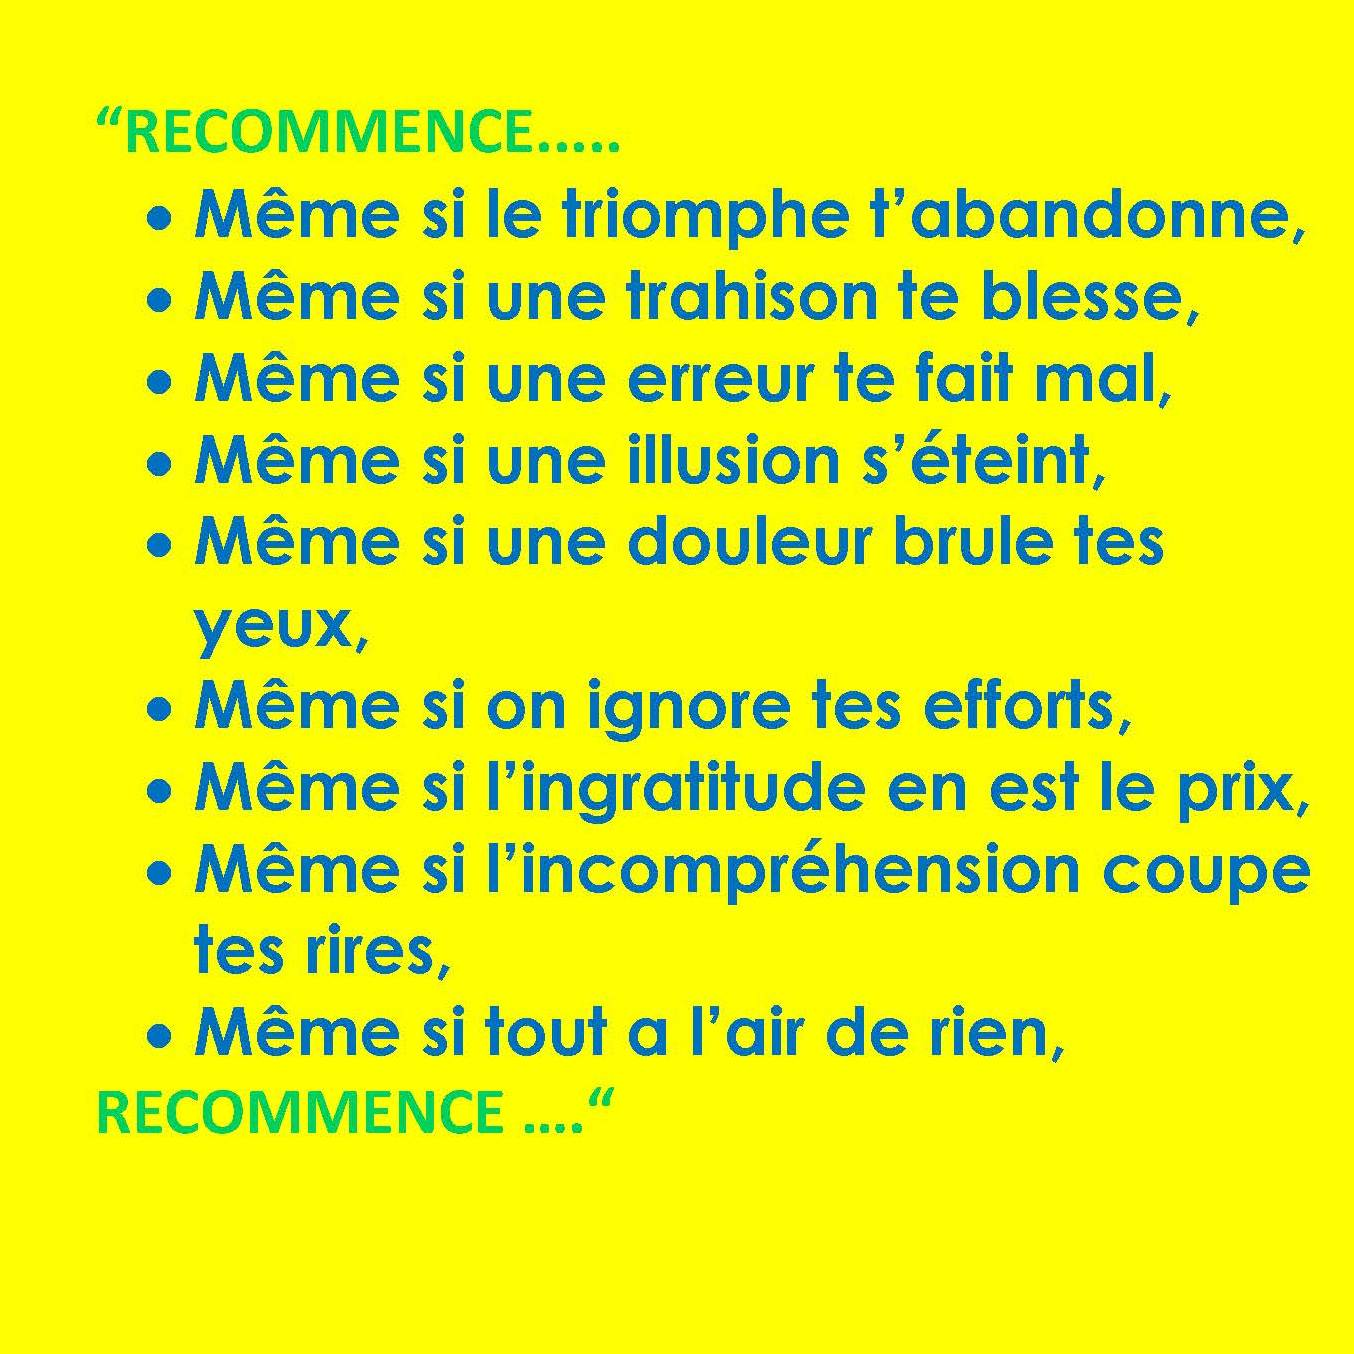 RECOMMENCE